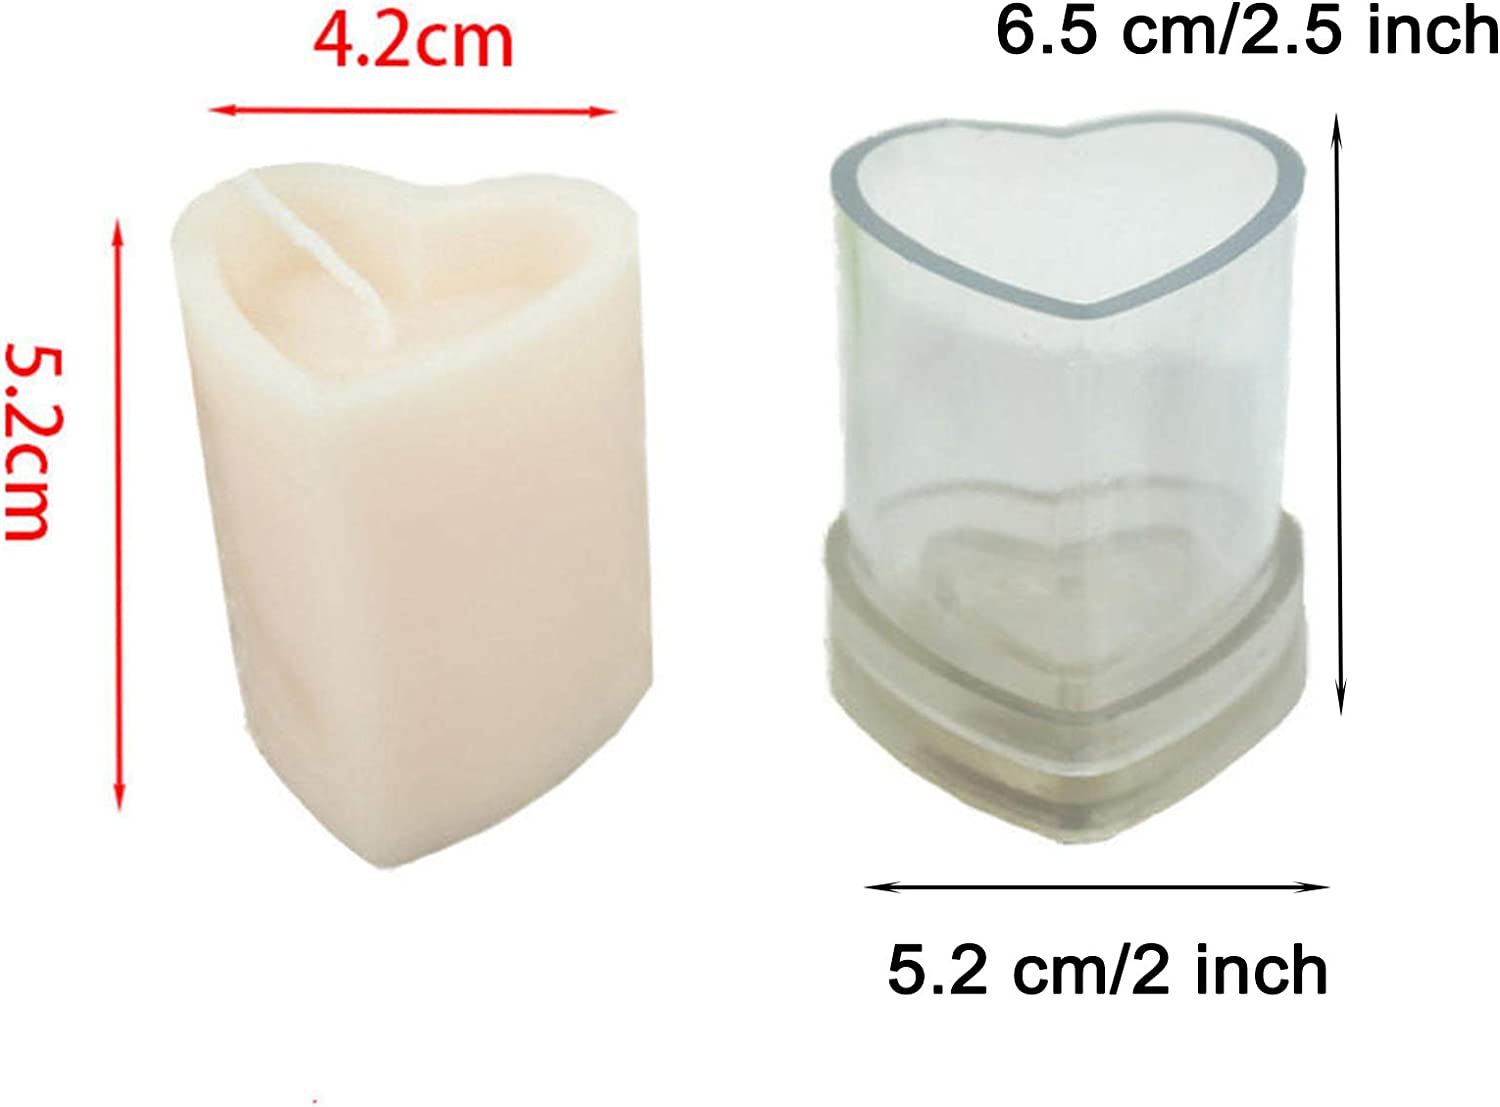 EORTA 3D Heart Candle Mold Acrylic Column Candle Making Tool Handmade Soap Mold for DIY Crafts Clay Bath Bomb 2.5x2 Inch Clear